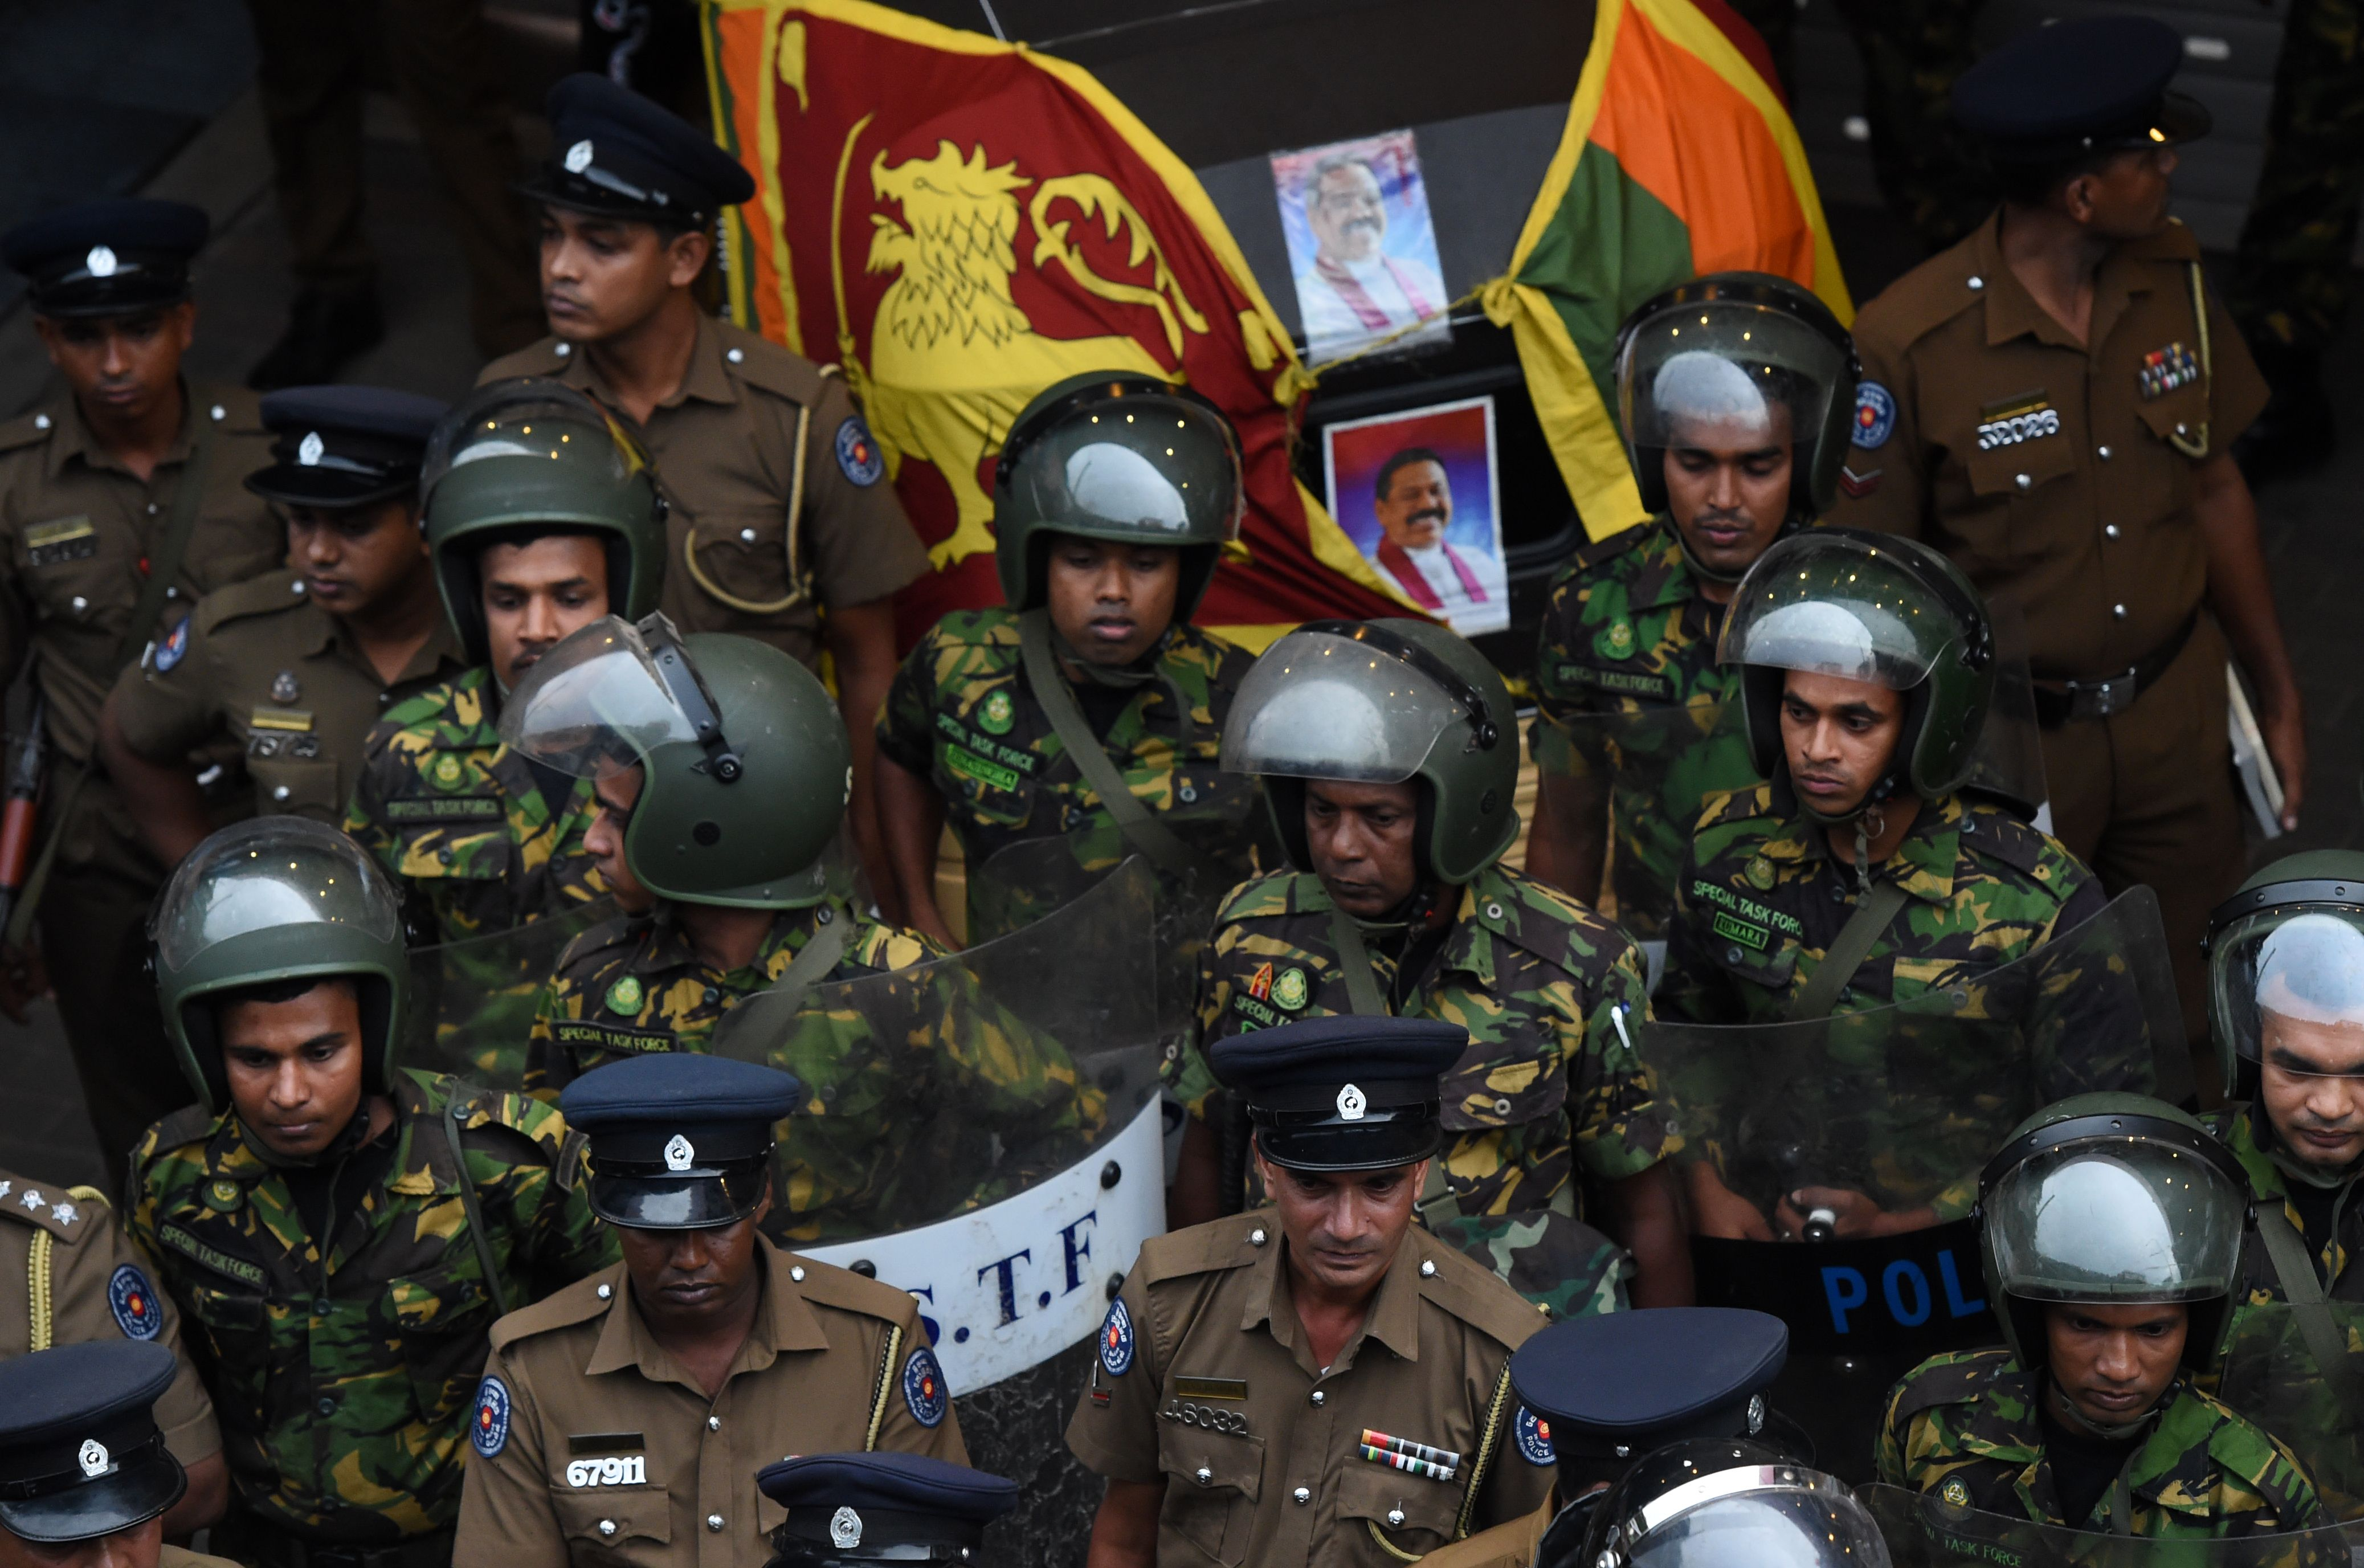 Sri Lankan soldiers keep watch outside the ceylon petroleum corporation in Colombo on October 28, 2018. - A constitutional crisis gripping Sri Lanka since the president's shock dismissal of Prime Minister Ranil Wickremesinghe erupted into violence on October 28, with a man shot dead and two others injured in Colombo. (Photo by ISHARA S.  KODIKARA / AFP)        (Photo credit should read ISHARA S.  KODIKARA/AFP/Getty Images)